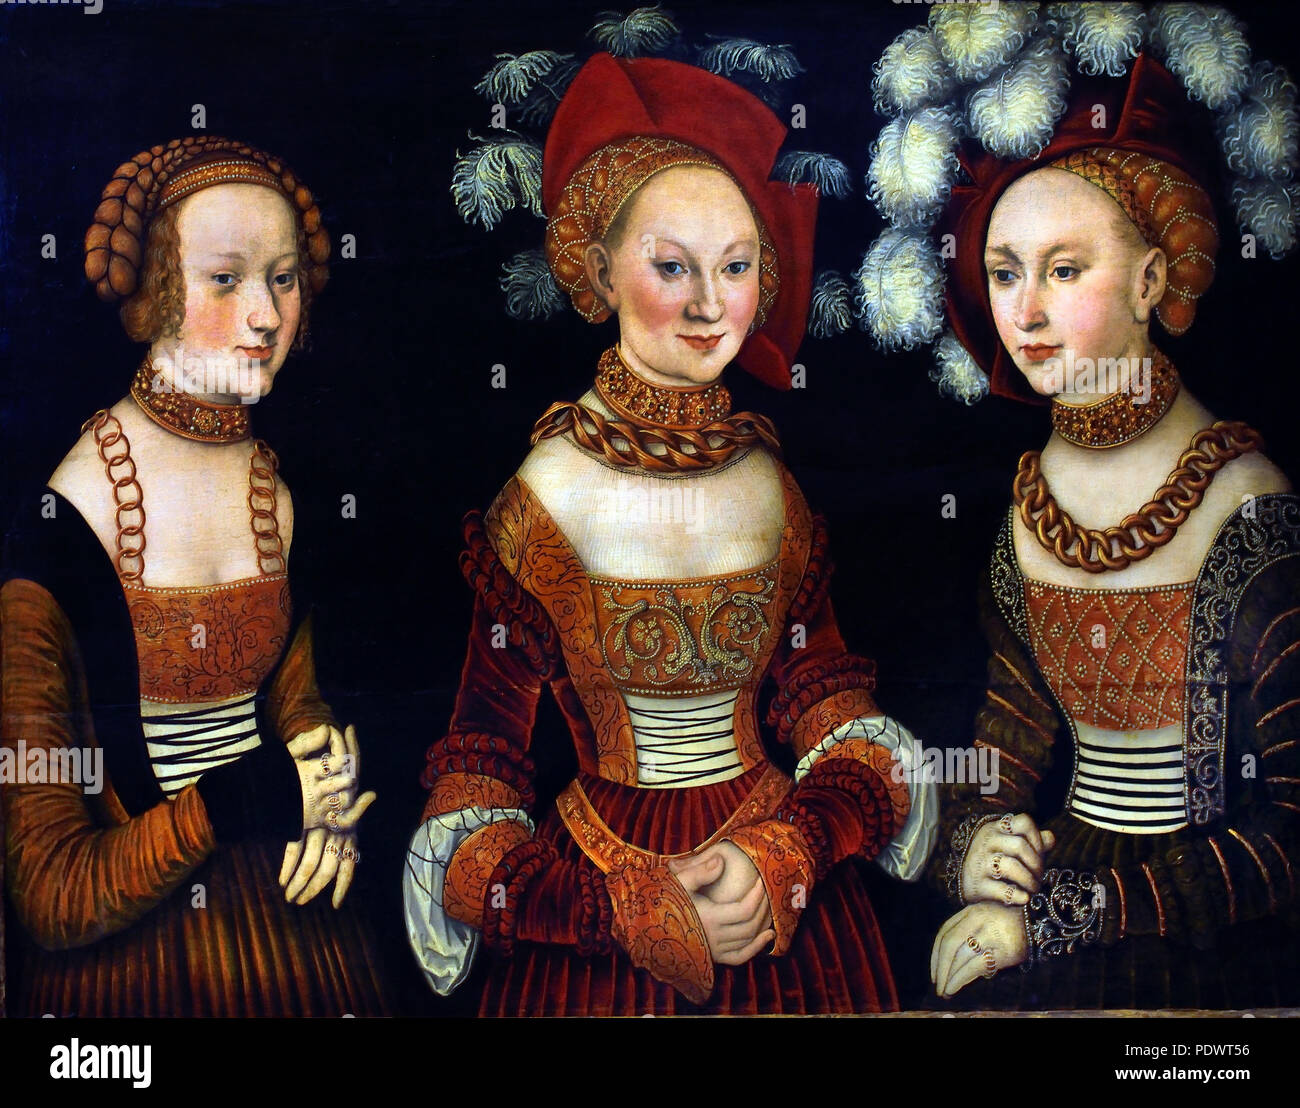 The princesses Sibylla (1515-1592), Emilia (1516-1591) and Sidonia (1518-1575) of Saxony Lucas Cranach the Elder 1472 - 1553 German Germany ( Porträt der drei Töchter Herzog Heinrichs des Frommen - Portrait of the three daughters Duke Henry the Pious ) - Stock Image